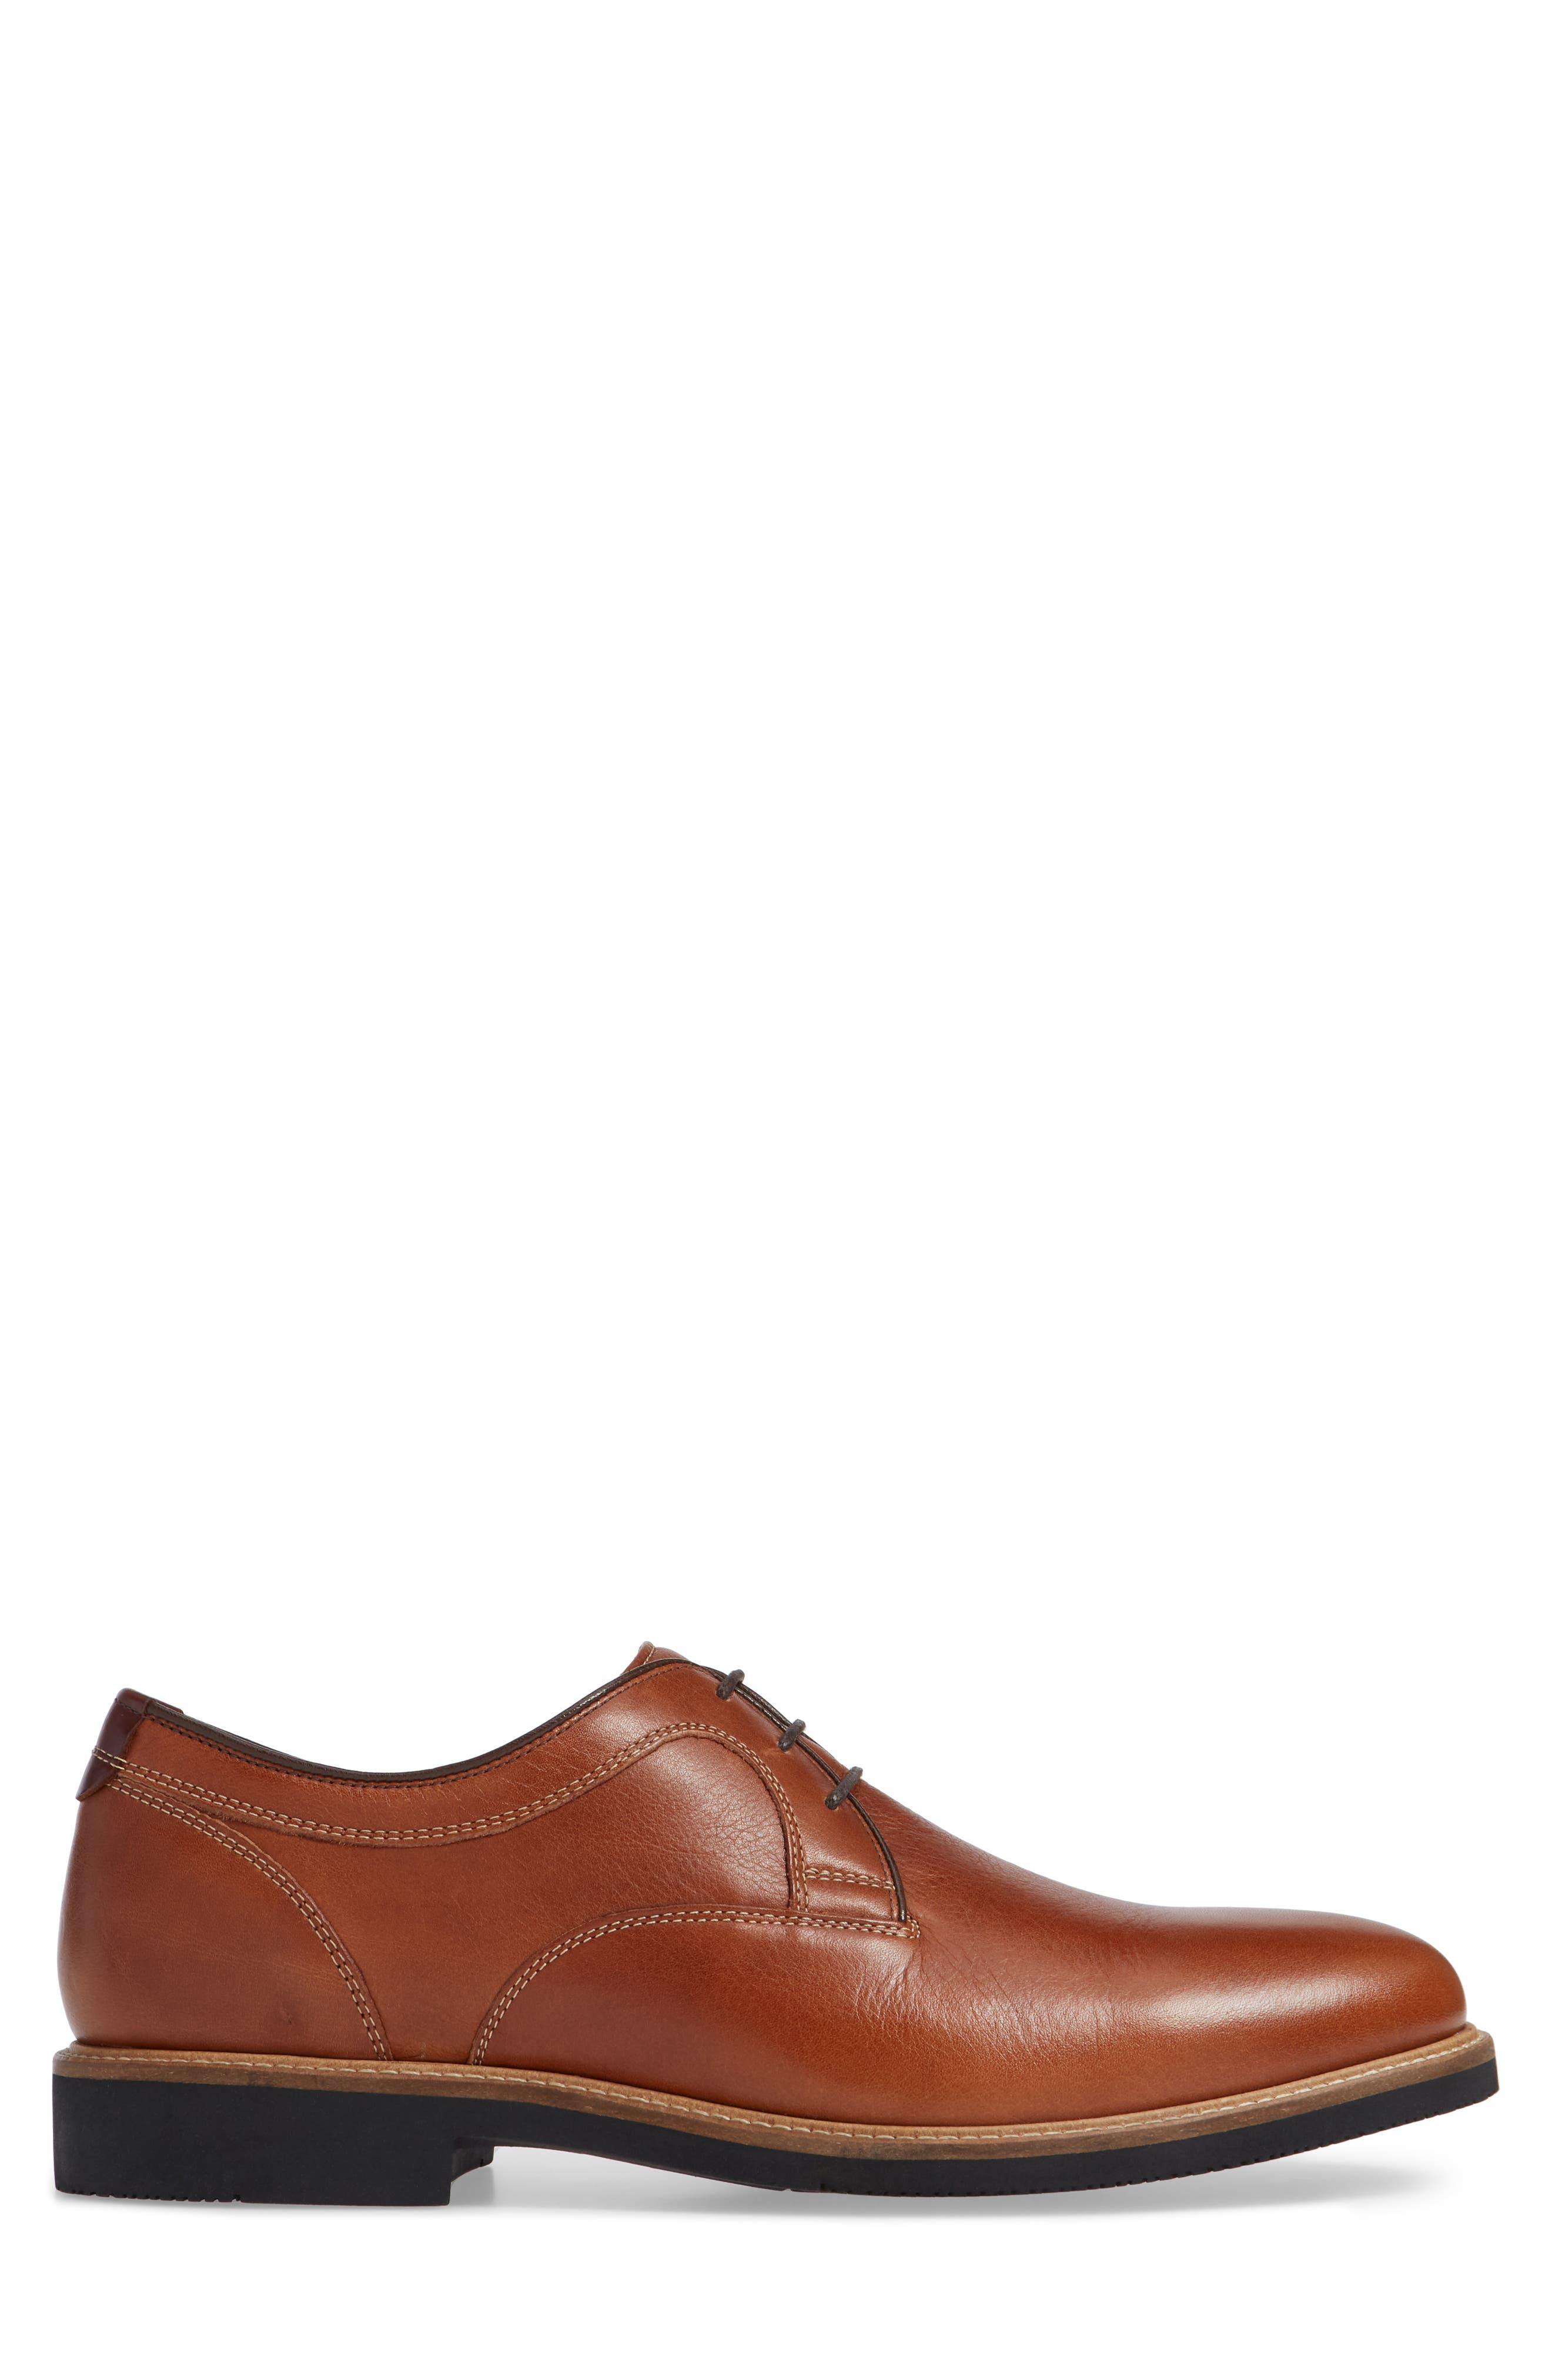 Barlow Plain Toe Derby,                             Alternate thumbnail 3, color,                             DARK TAN LEATHER